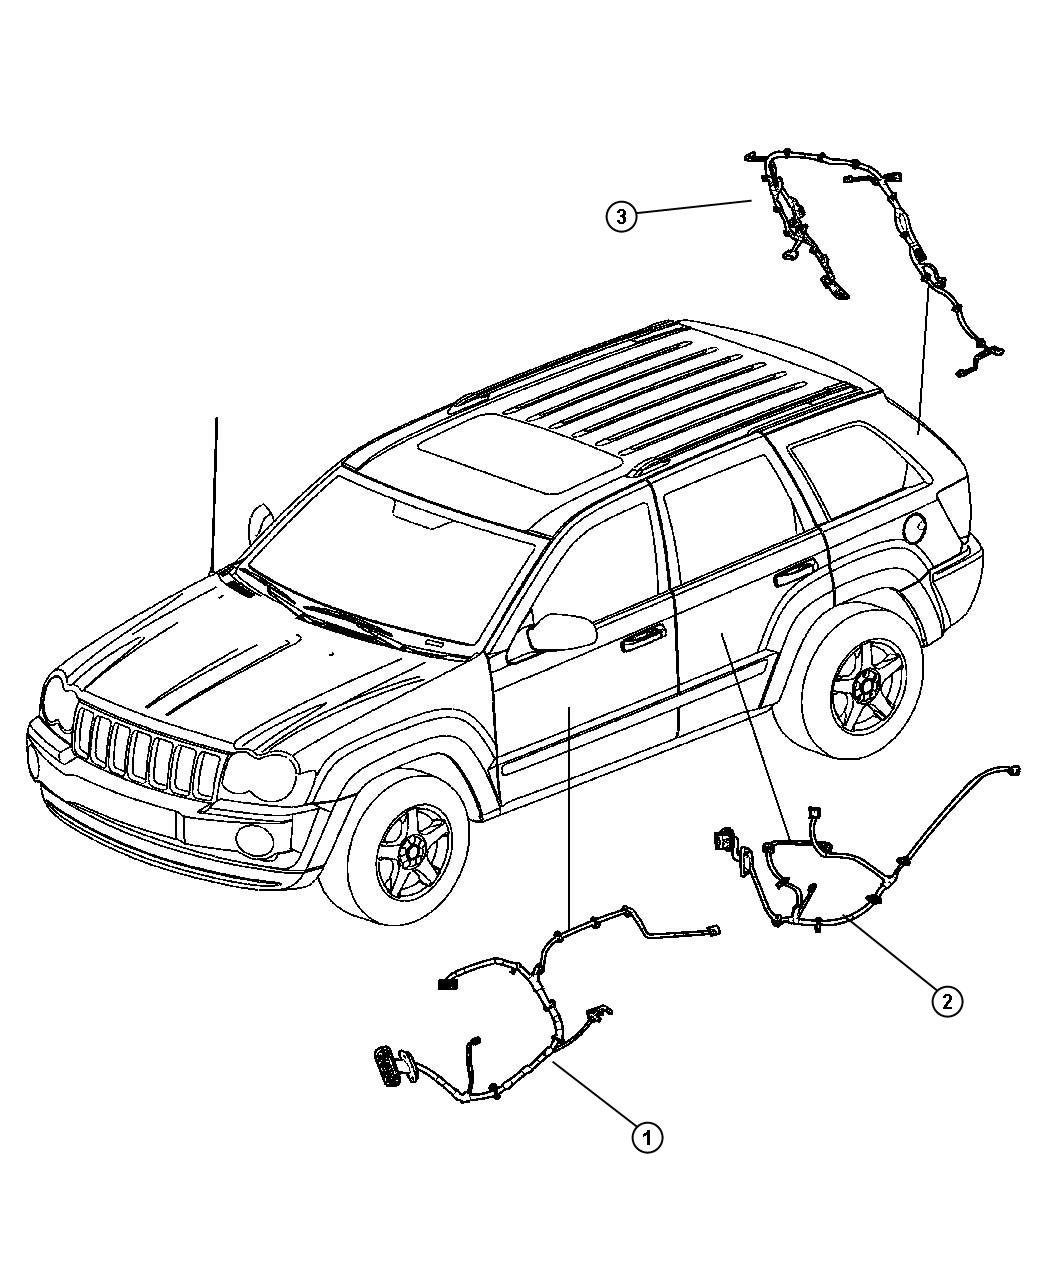 2008 Jeep Grand Cherokee Wiring. Liftgate. [parkview(tm